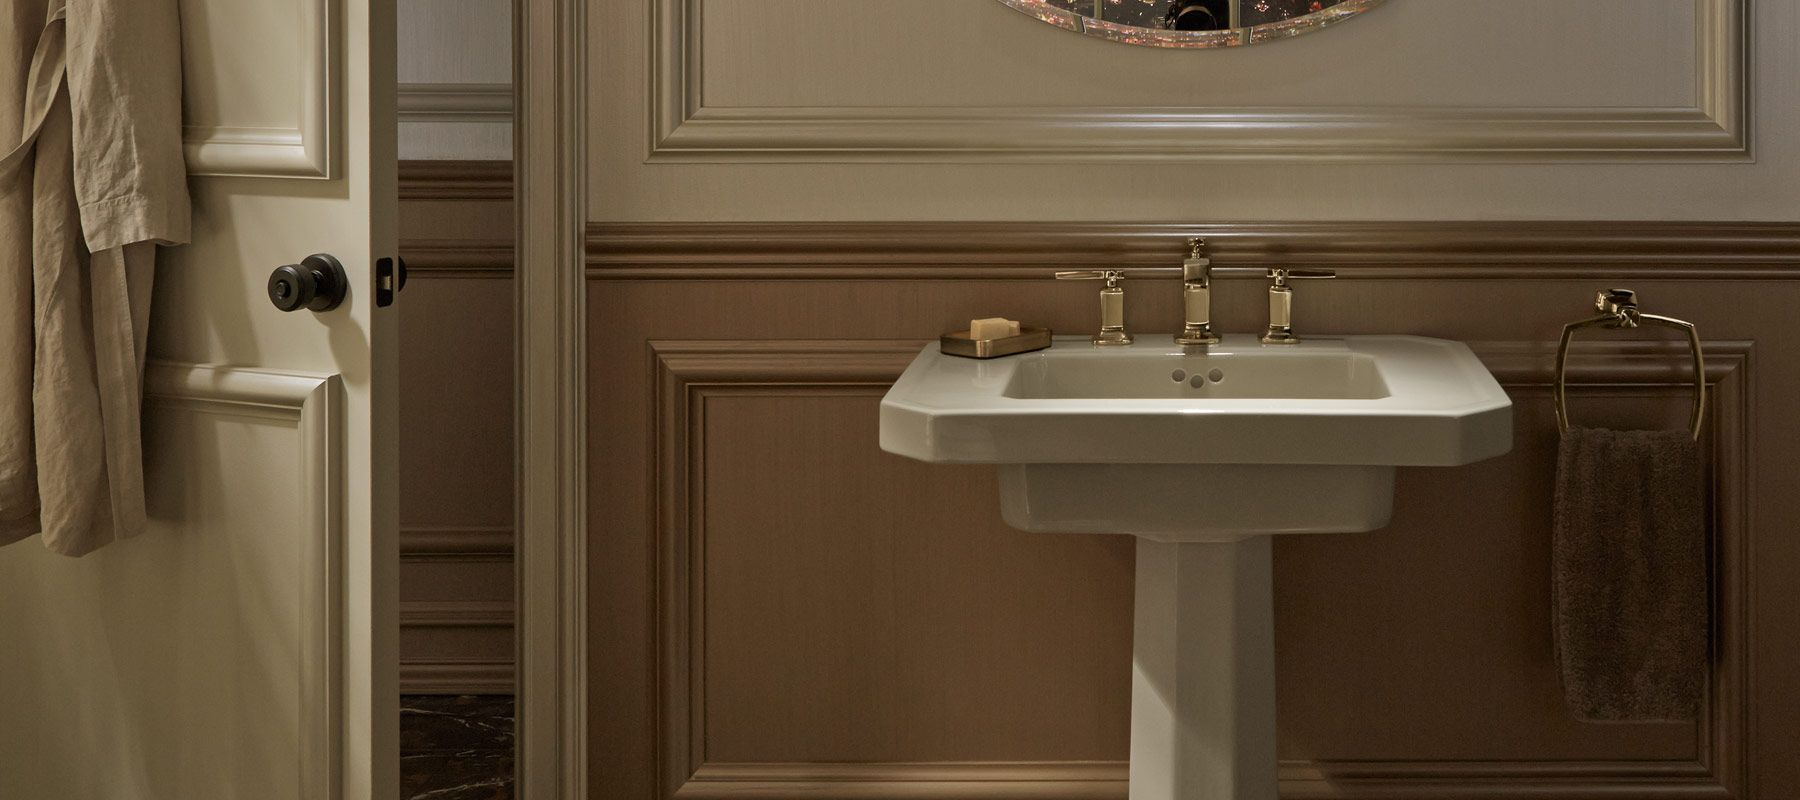 Pedestal Bathroom Sinks | Bathroom | KOHLER